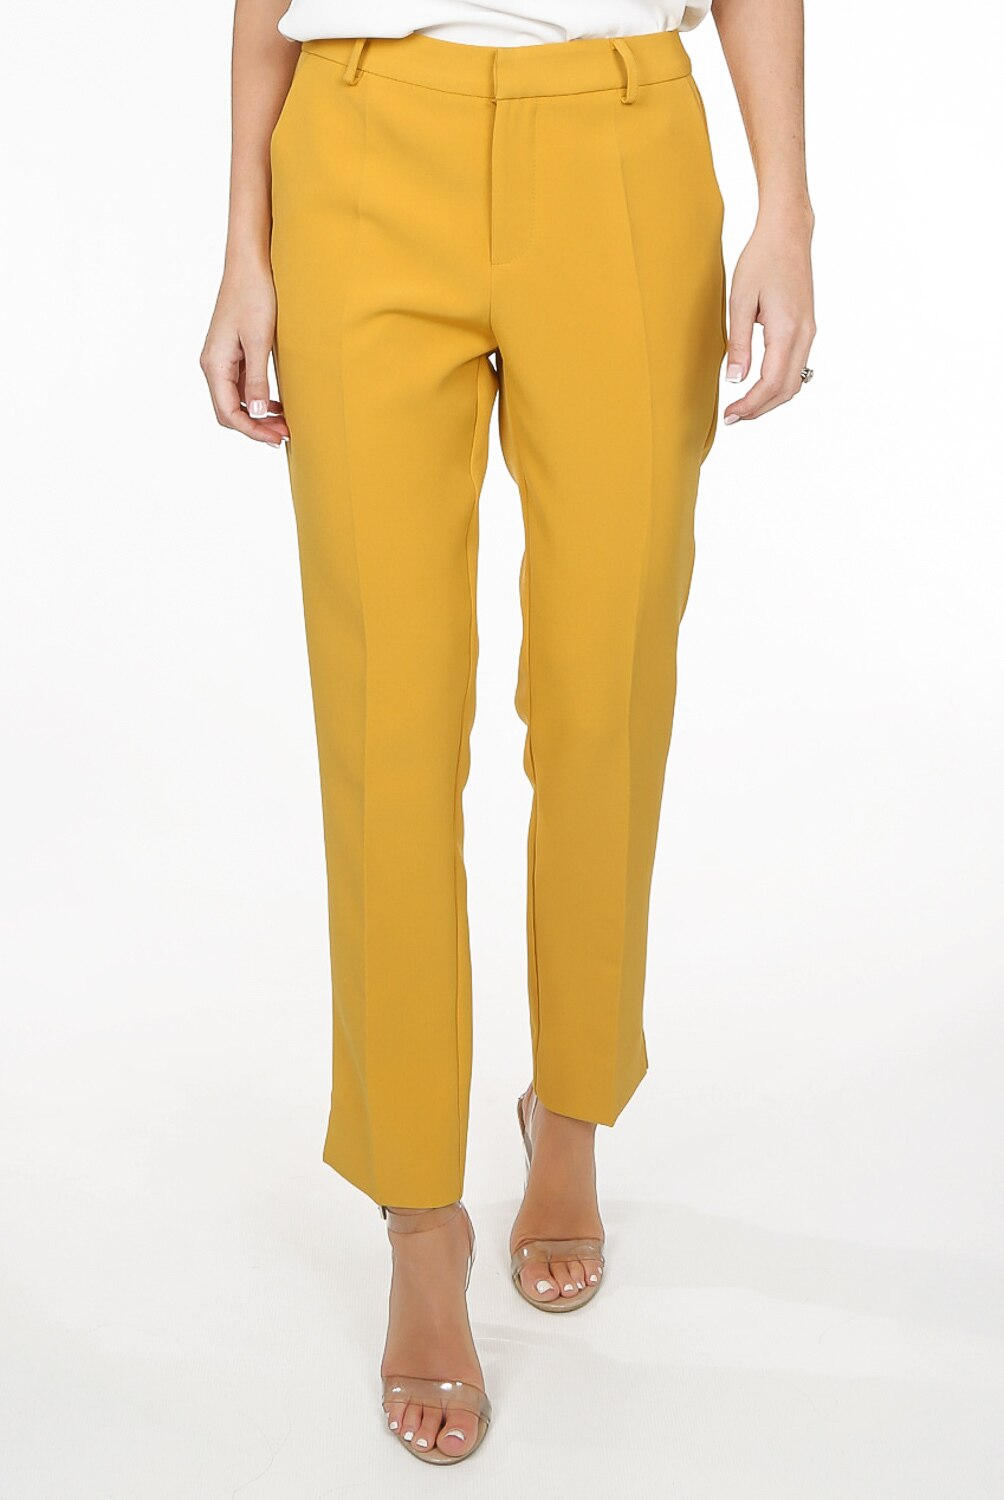 TAILORED ANKLE SLIT TROUSER